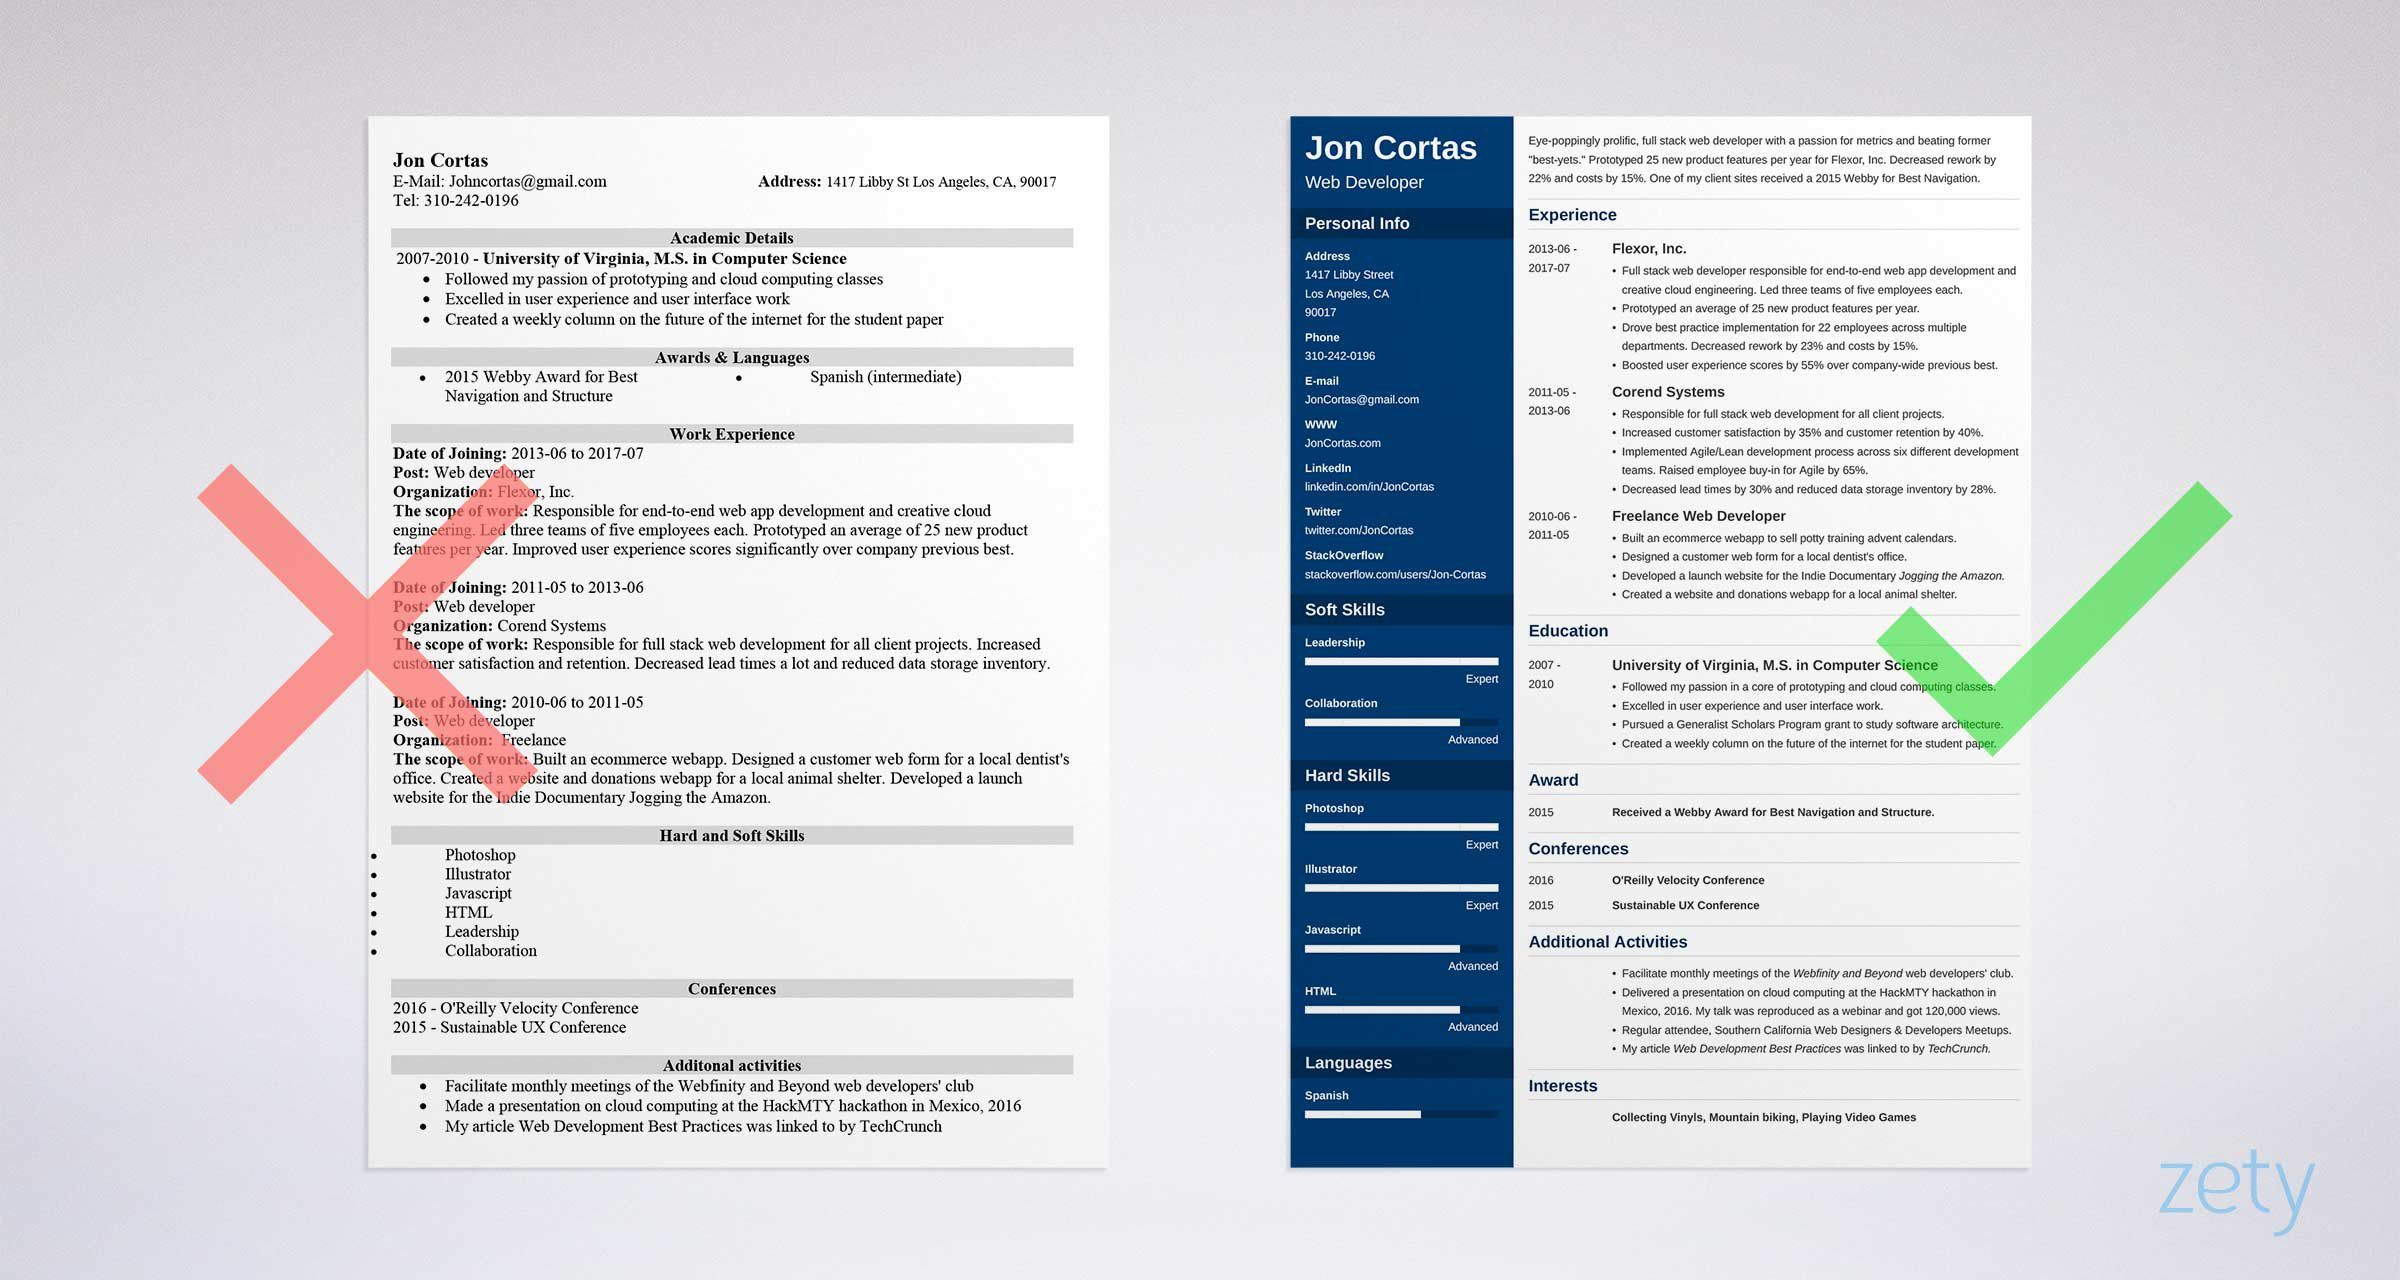 008 Impressive How To Make Resume Template In Word 2013 Photo Full